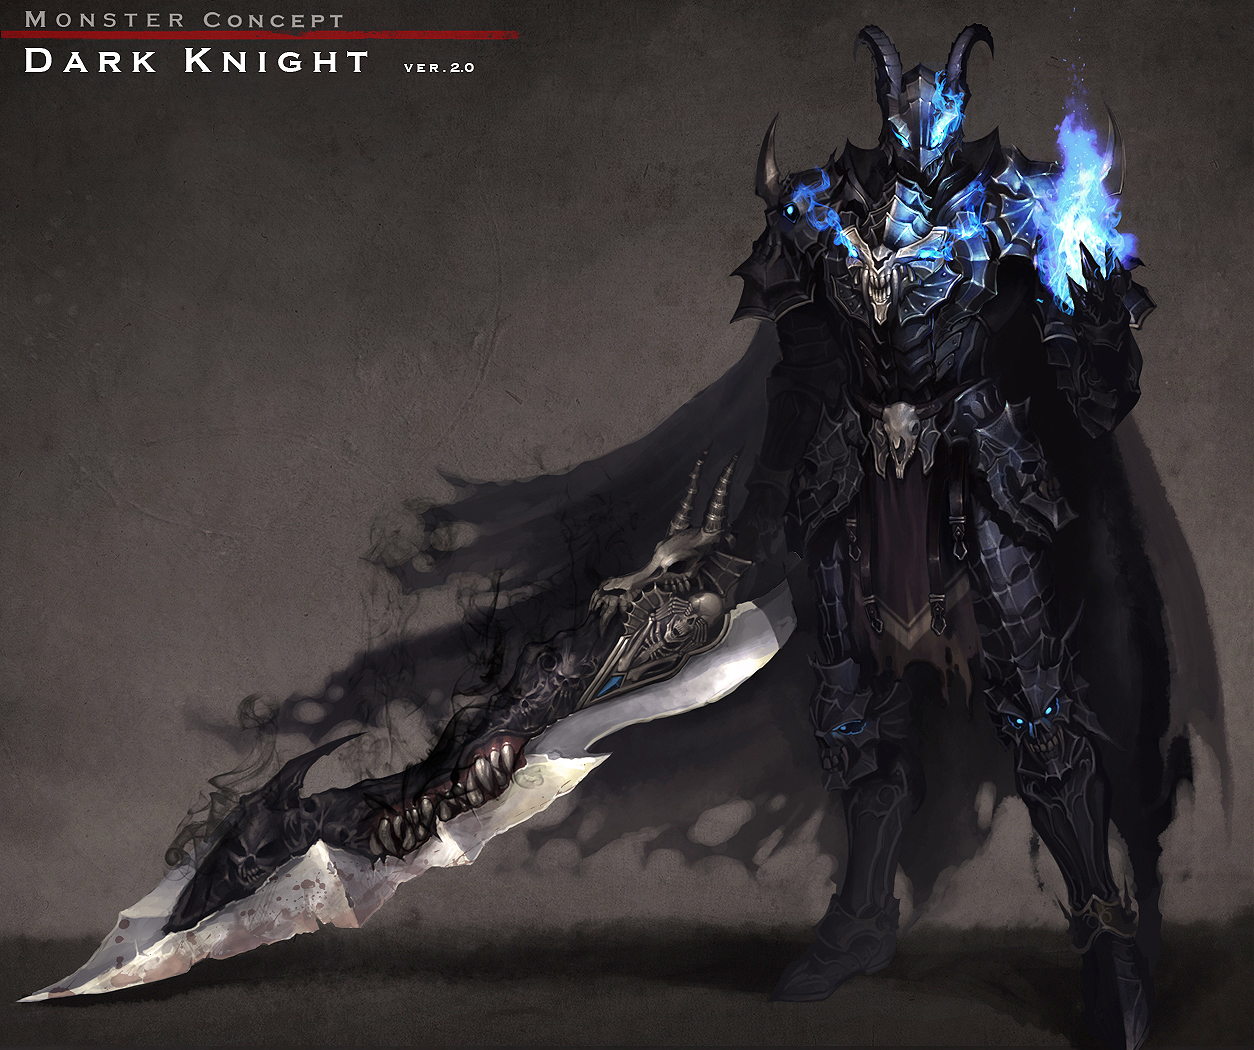 Dark Knight Ver 2.0 by reaper78